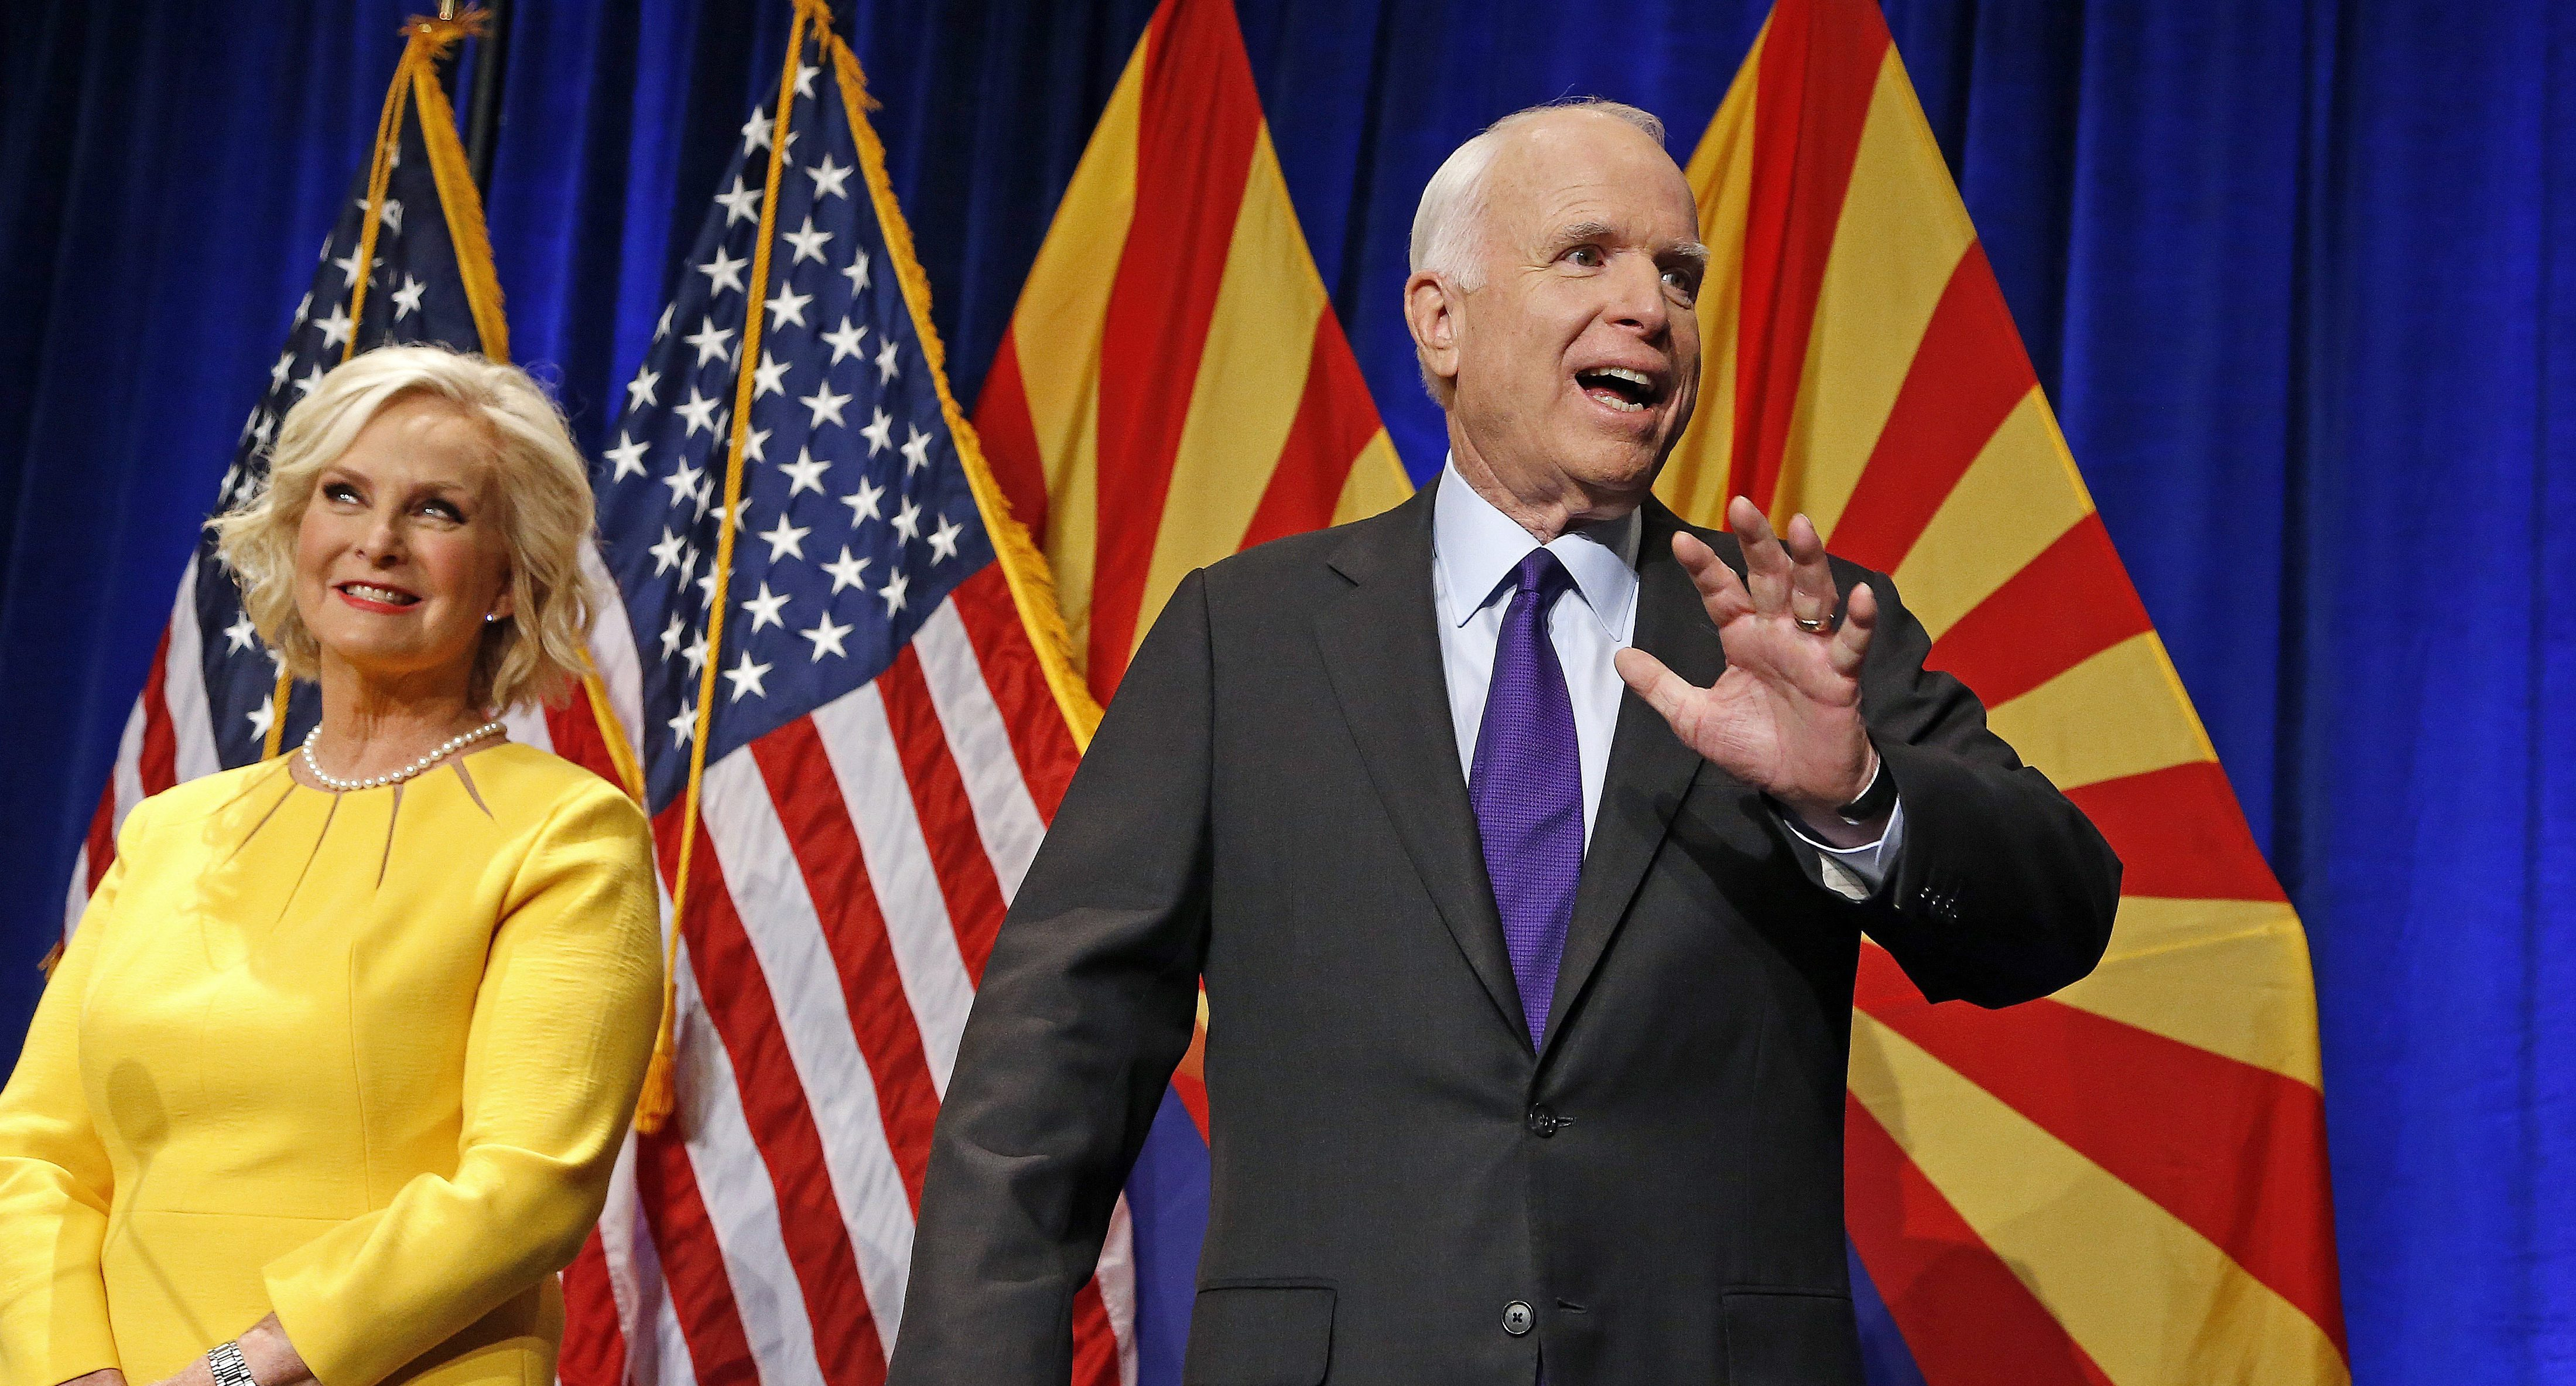 Sen. John McCain, R-Ariz., right, waves to supporters at his victory party as wife Cindy McCain, left, joins him on stage as he announces his victory over Democratic challenger  Rep. Ann Kirkpatrick Tuesday, Nov. 8, 2016, in Phoenix.